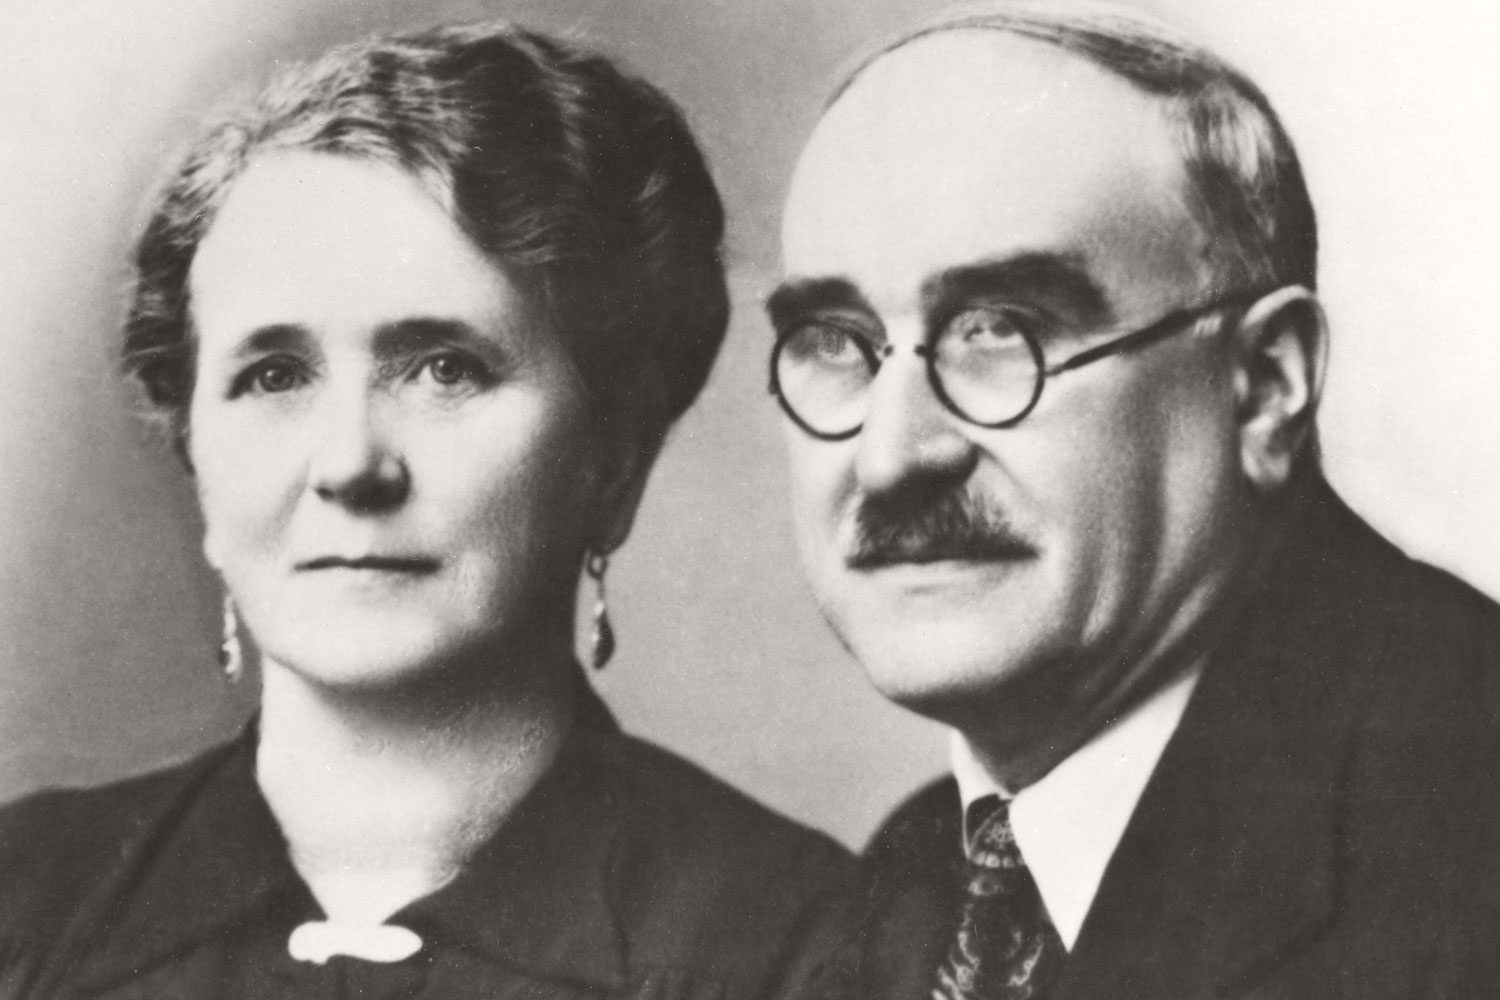 The second Pöttinger generation at Roßmarkt: Elisabeth and Alois, the founder of the company as we know it today.